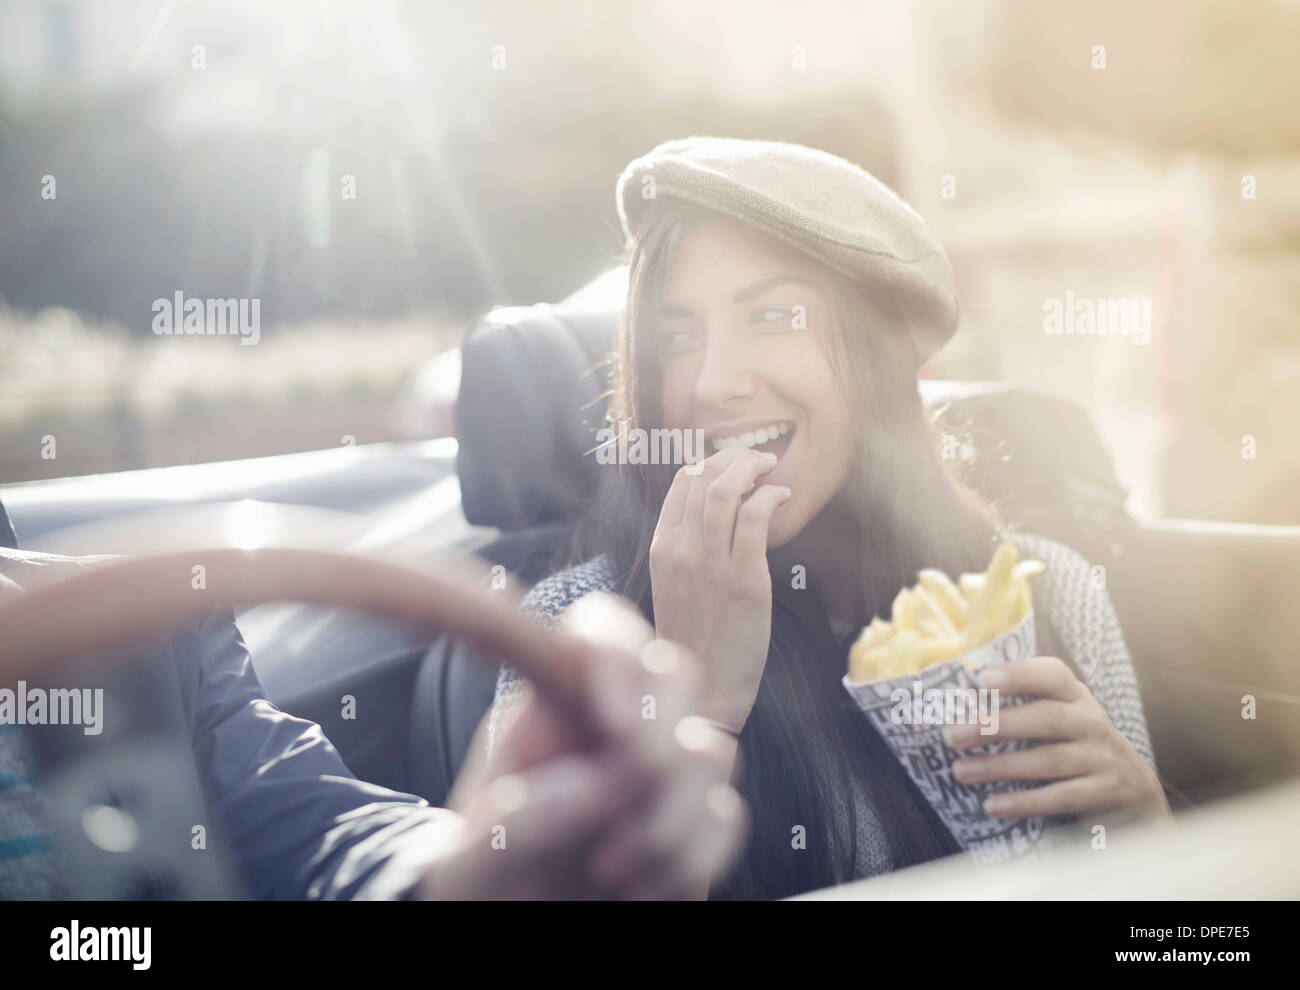 Young couple in convertible, woman eating chips - Stock Image